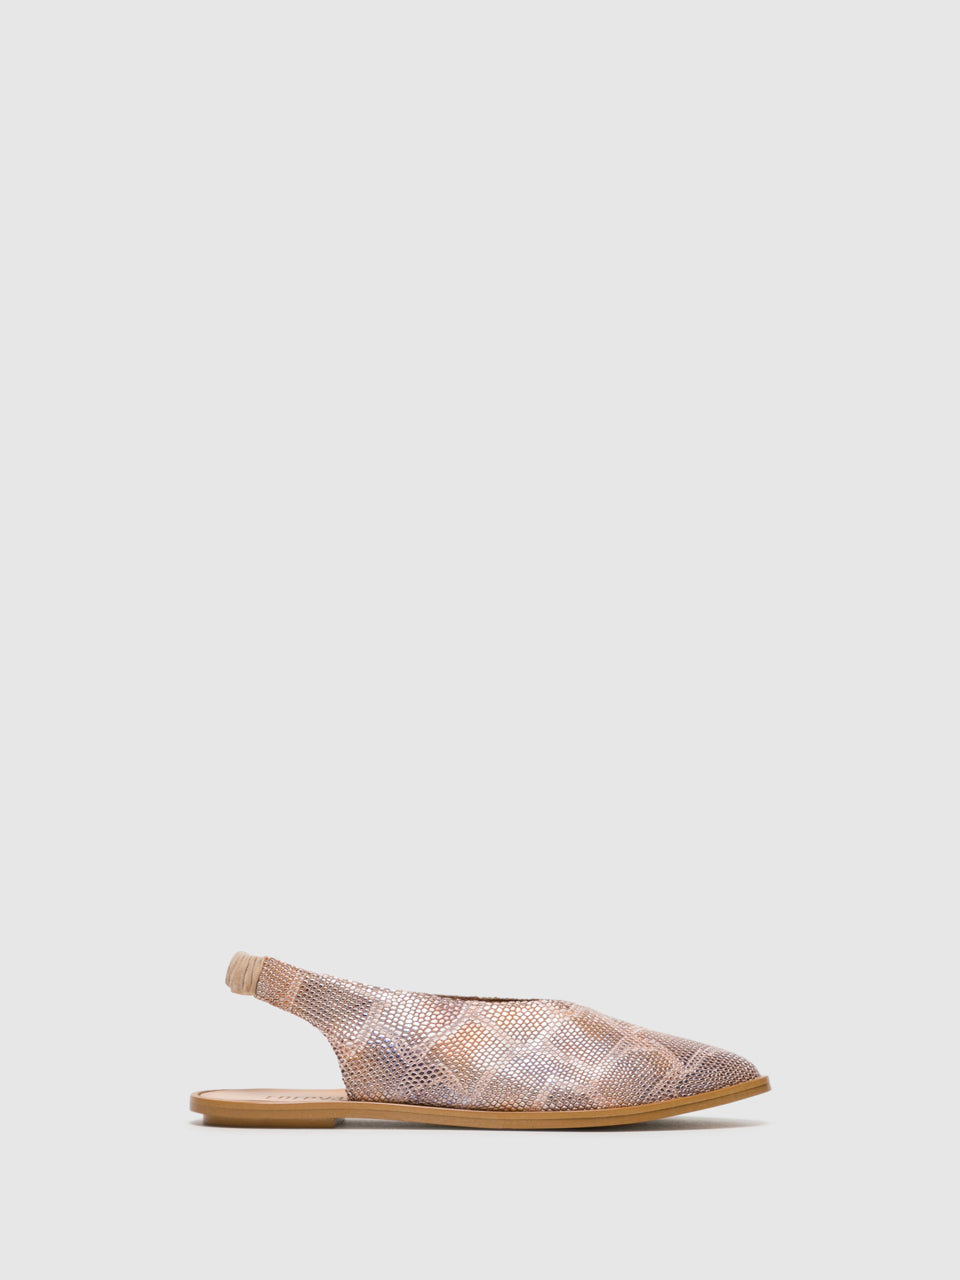 Foreva Beige Sling-Back Sandals